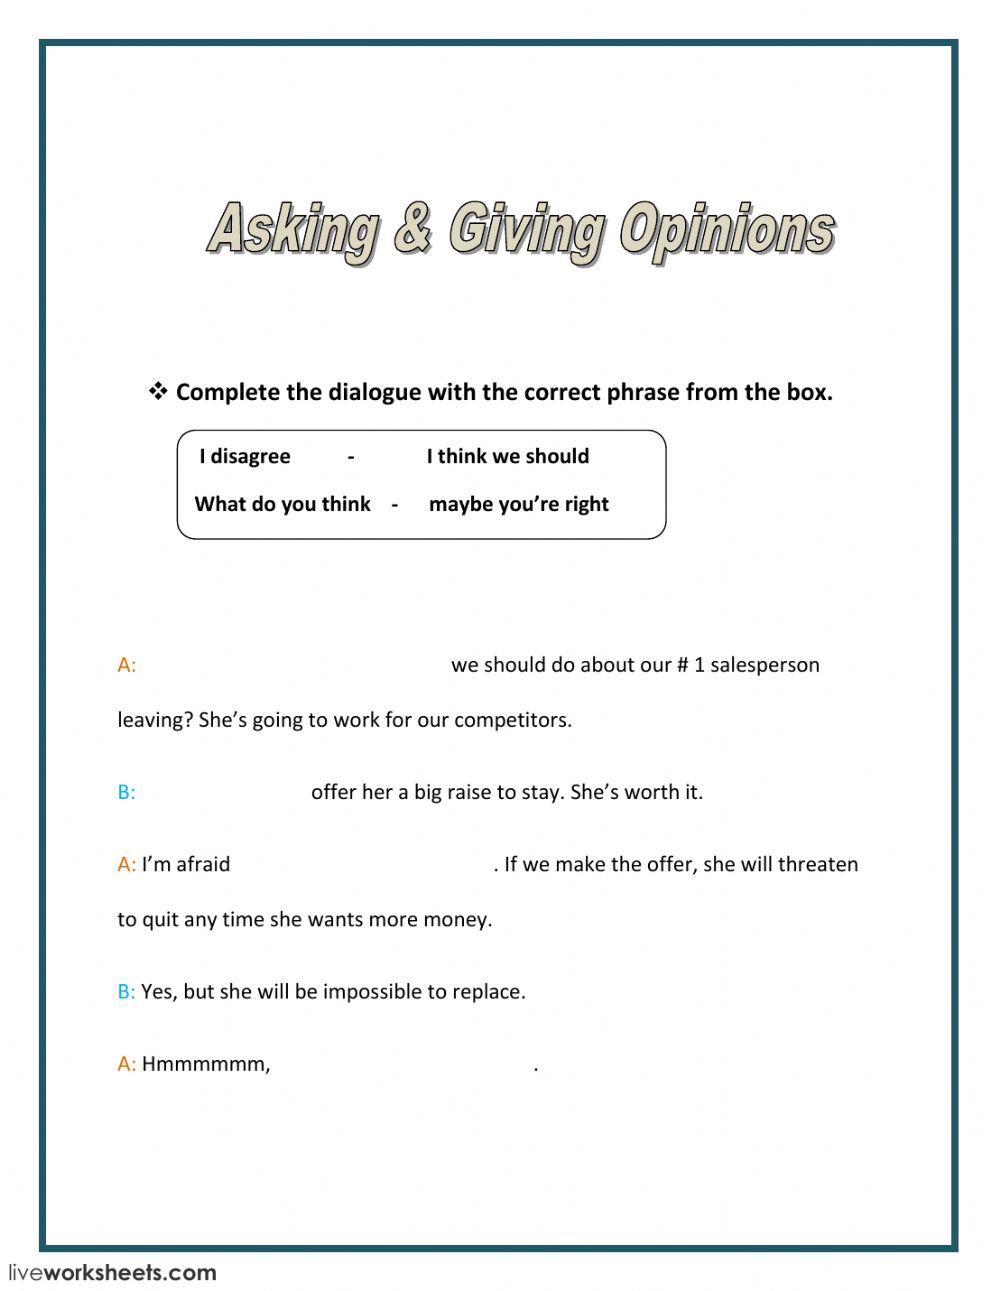 Worksheets Worksheet-asking-and-giving-opinion asking and giving opinions interactive worksheet text